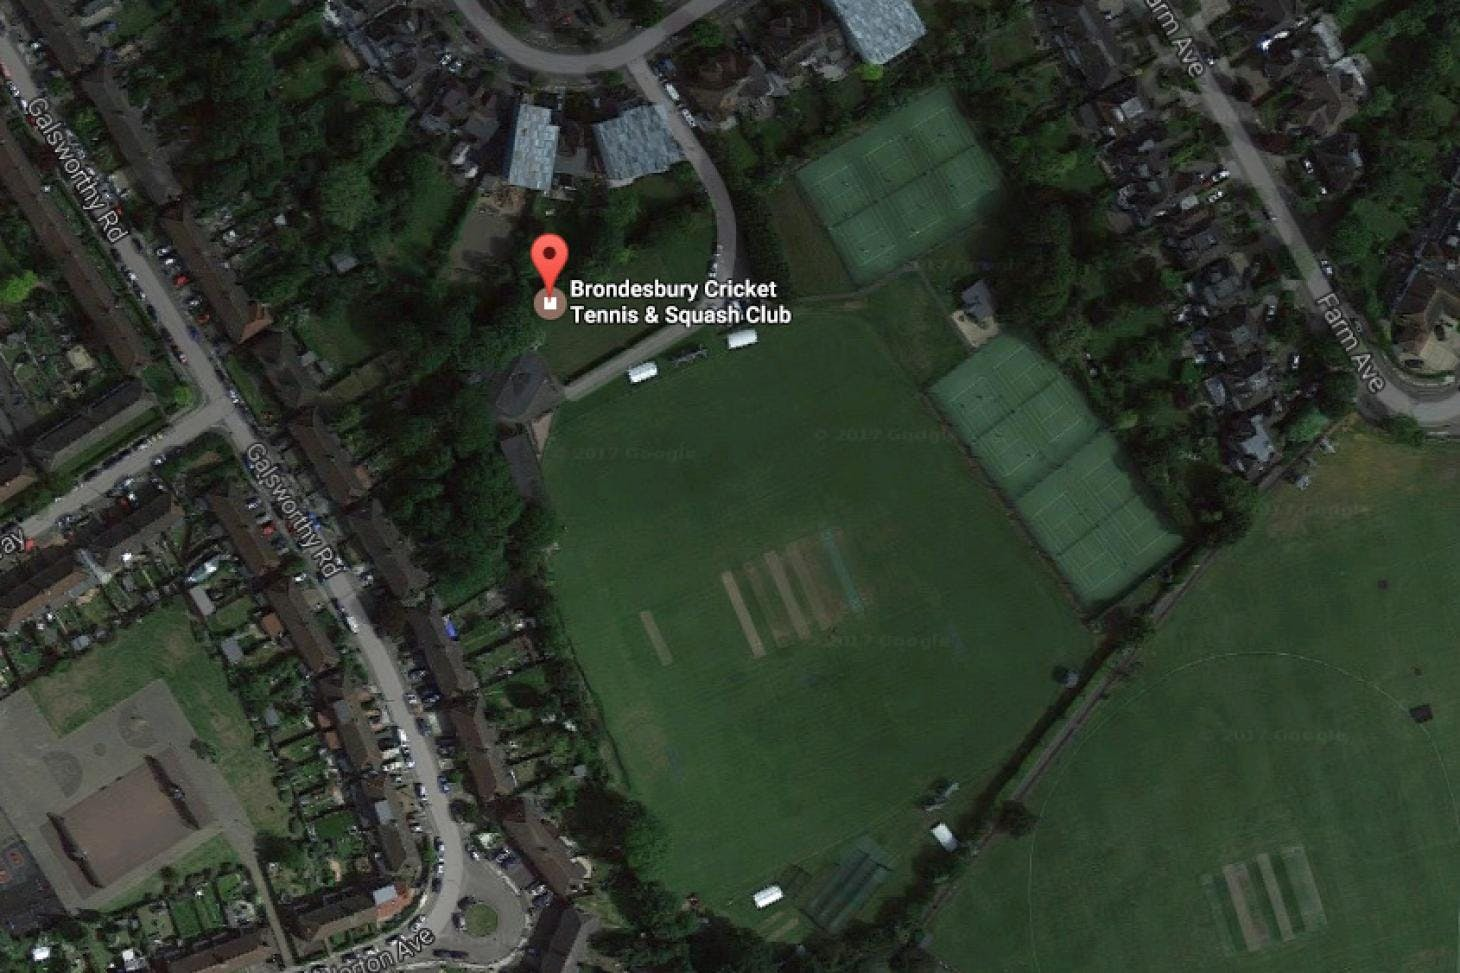 Brondesbury Cricket, Tennis & Squash Club Full size | Grass cricket facilities